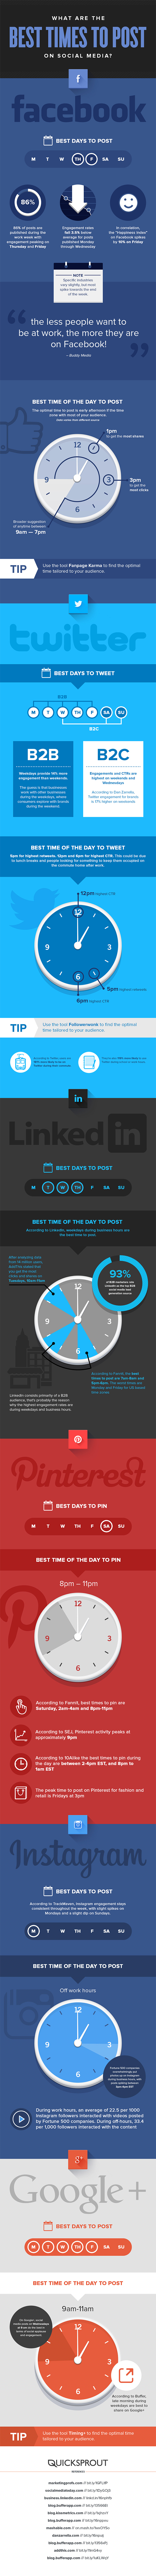 FAQ What Are The Best Times to Post on Social Media